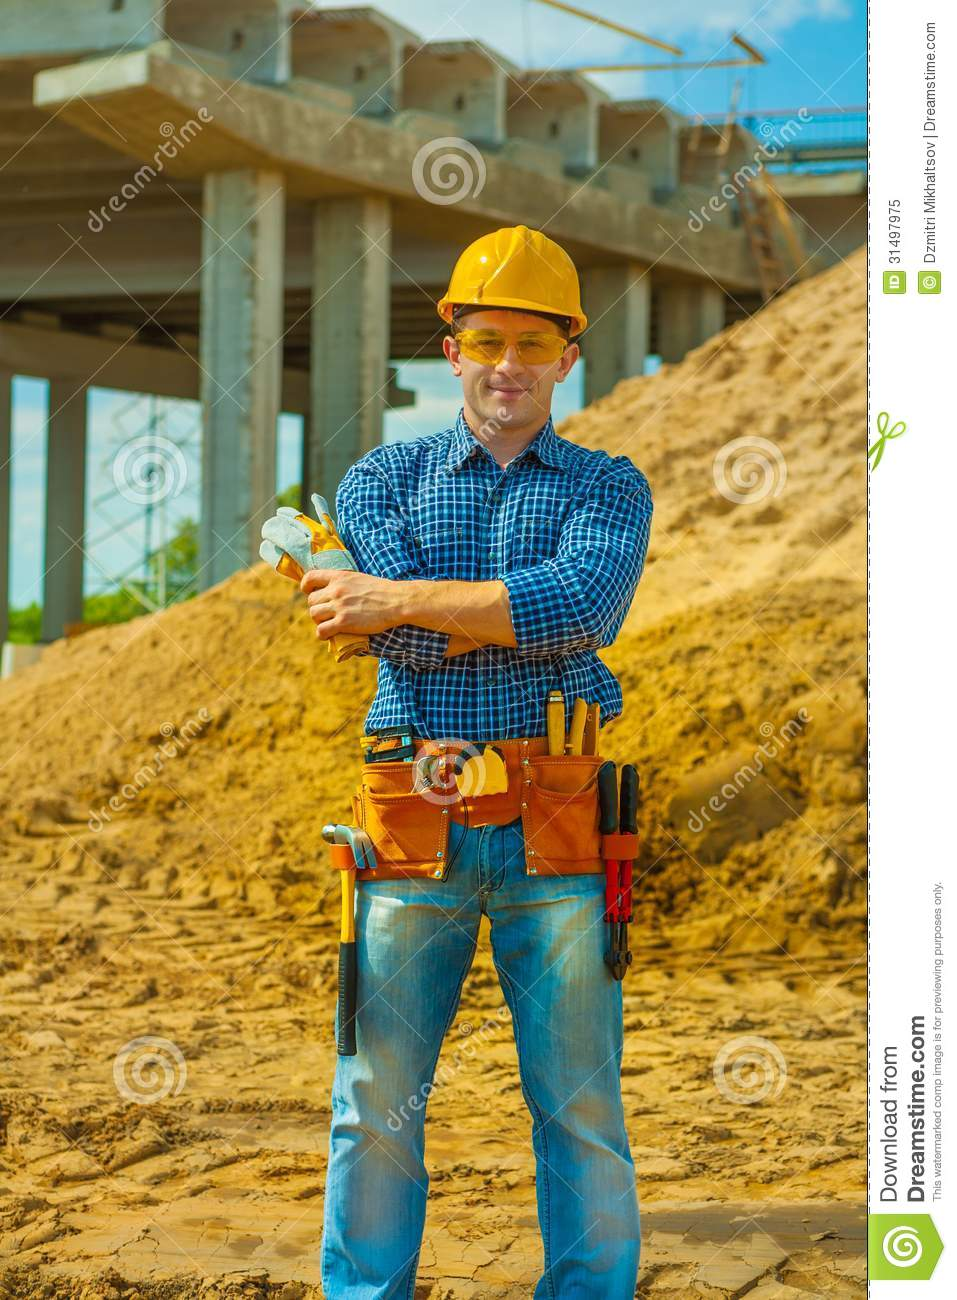 Contractor on building place royalty free stock photo for Contractors needed to build a house